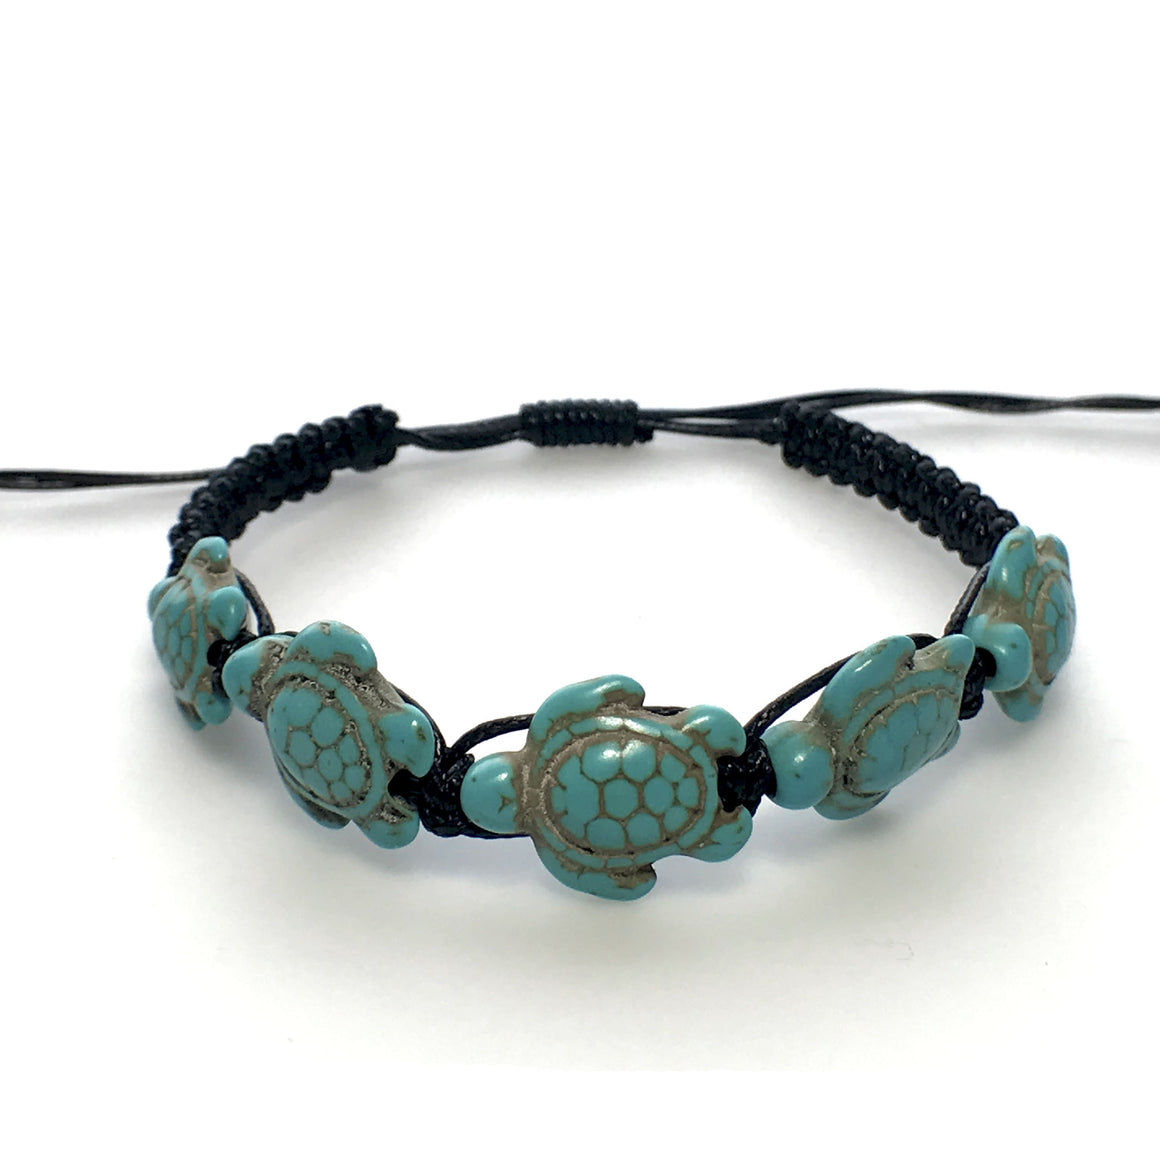 Turquoise and Black Sea Turtle Shamballas